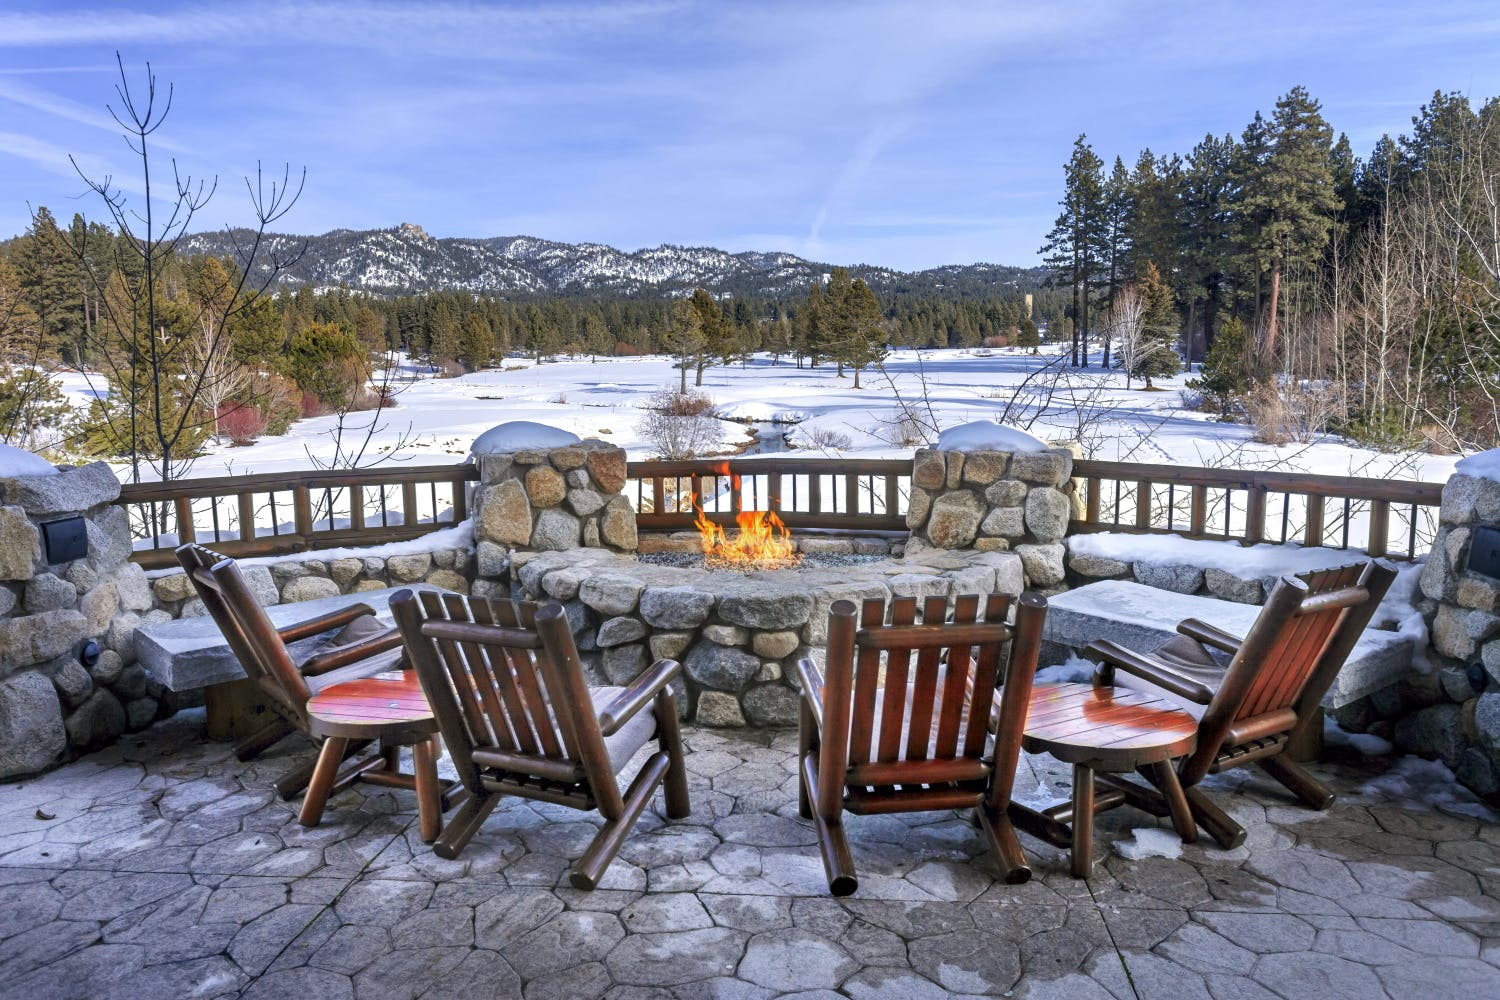 chairs placed around an outdoor fire pit with a view of the forest near Tahoe